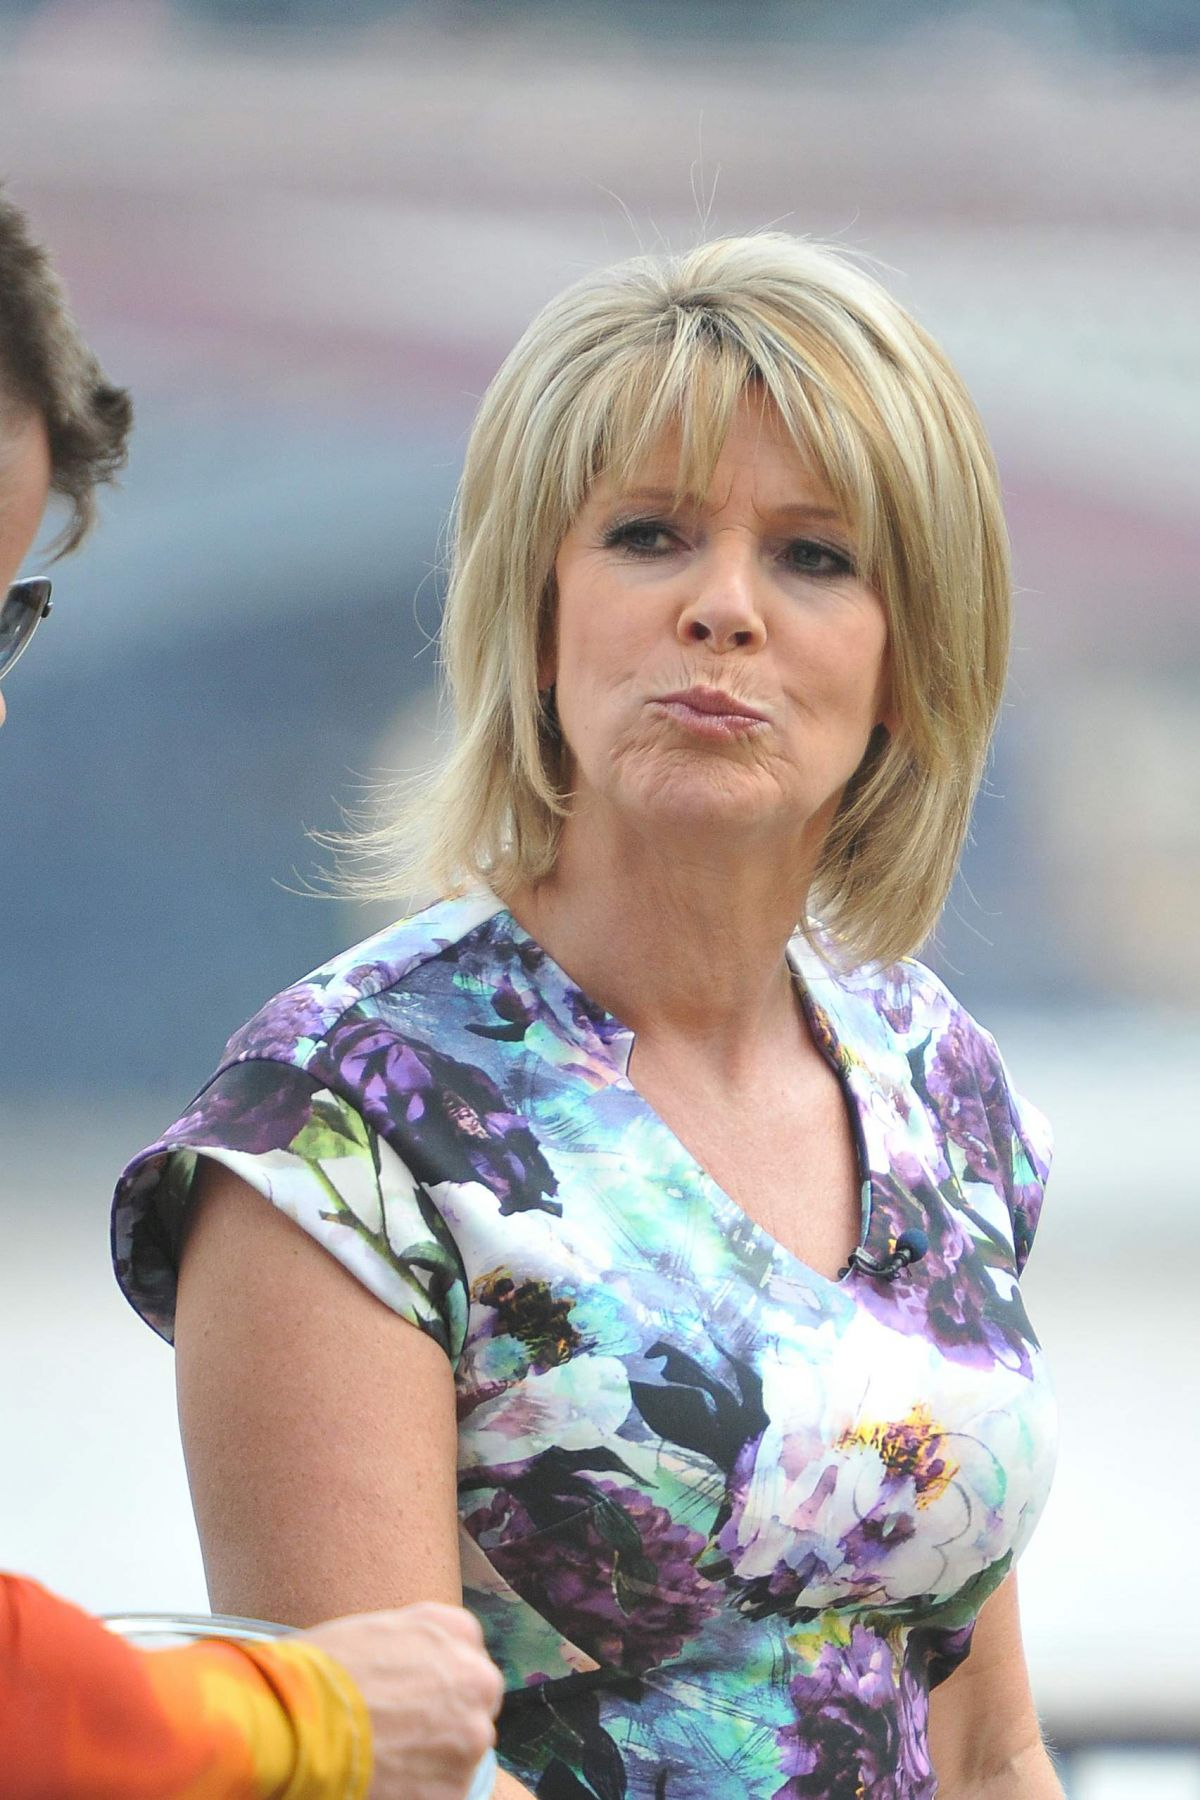 Ruth Langsford On The Set F This Morning Show In London 07